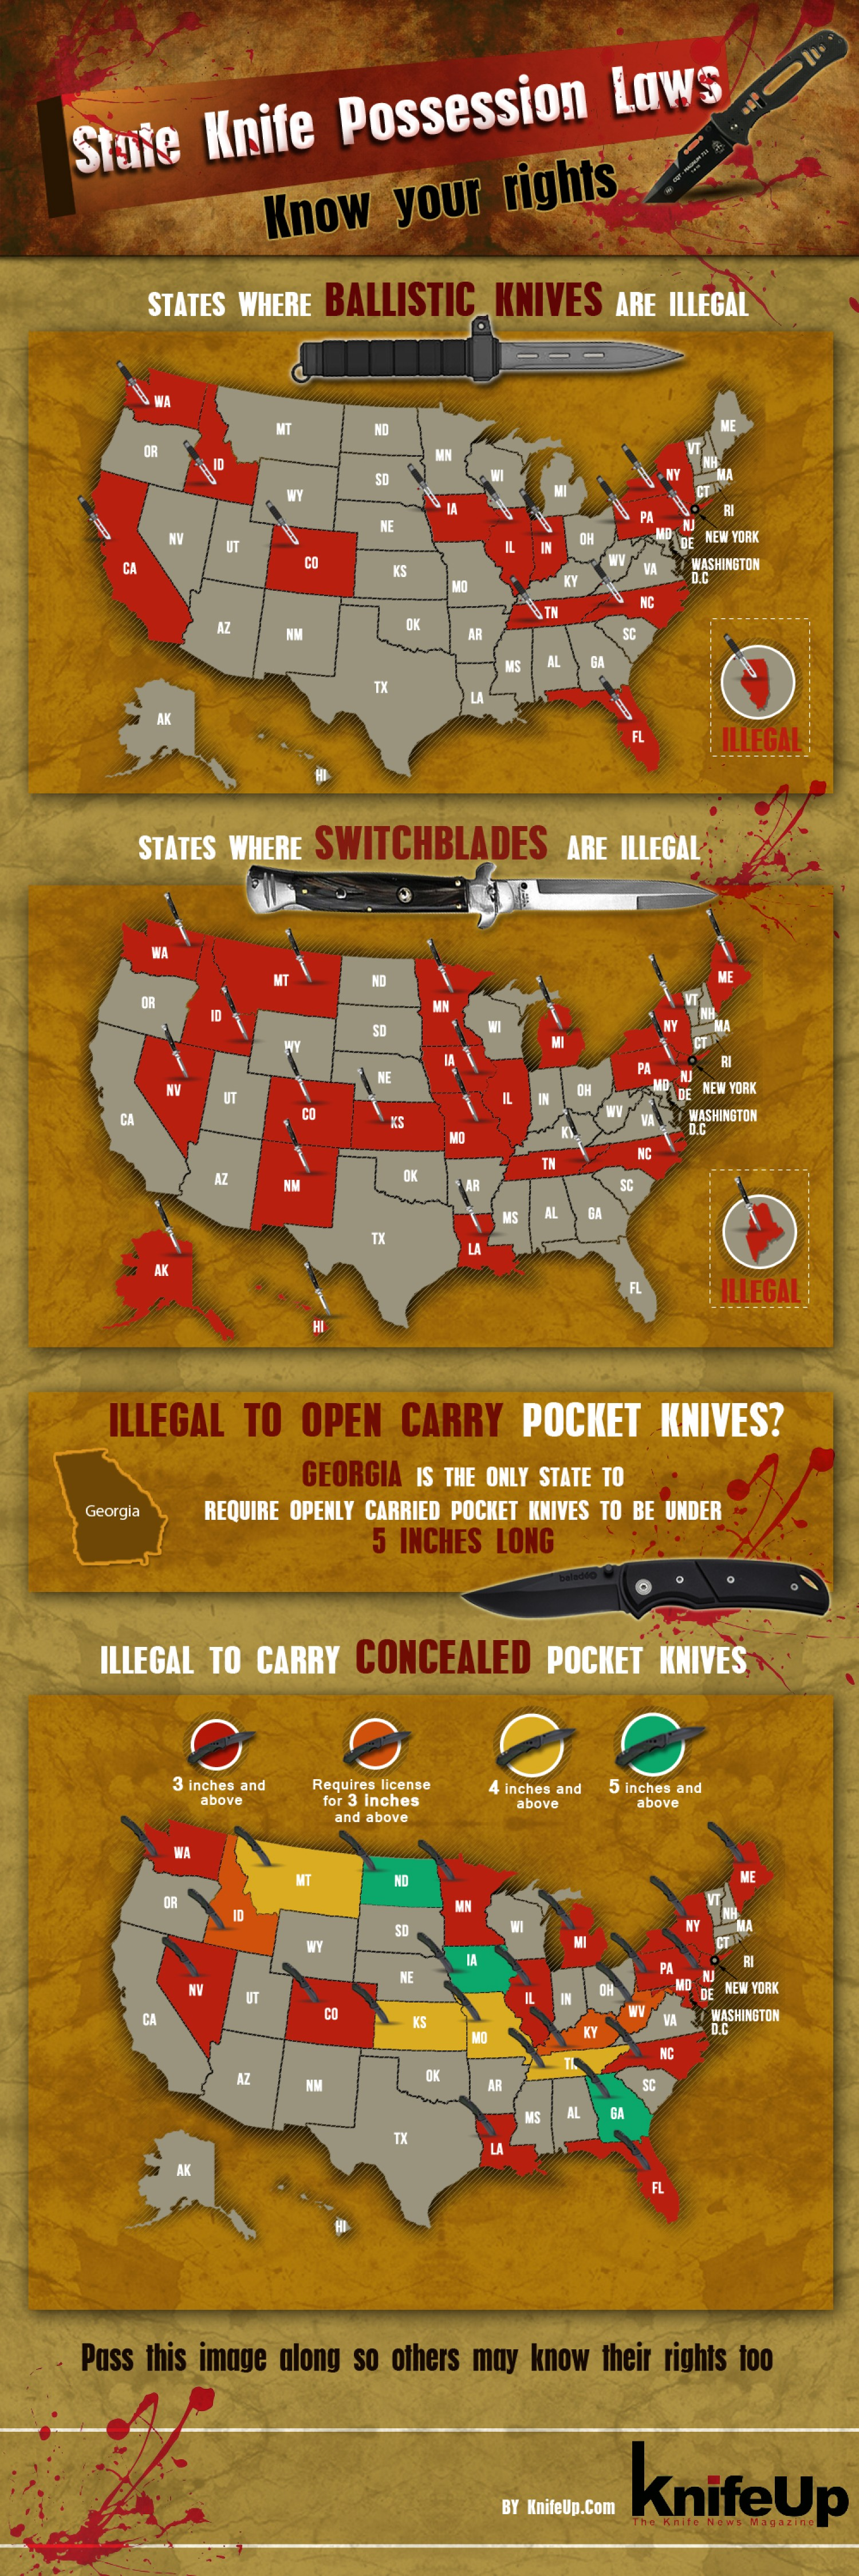 state-knife-possession-laws-know-your-rights_5245c7771e420_w1500